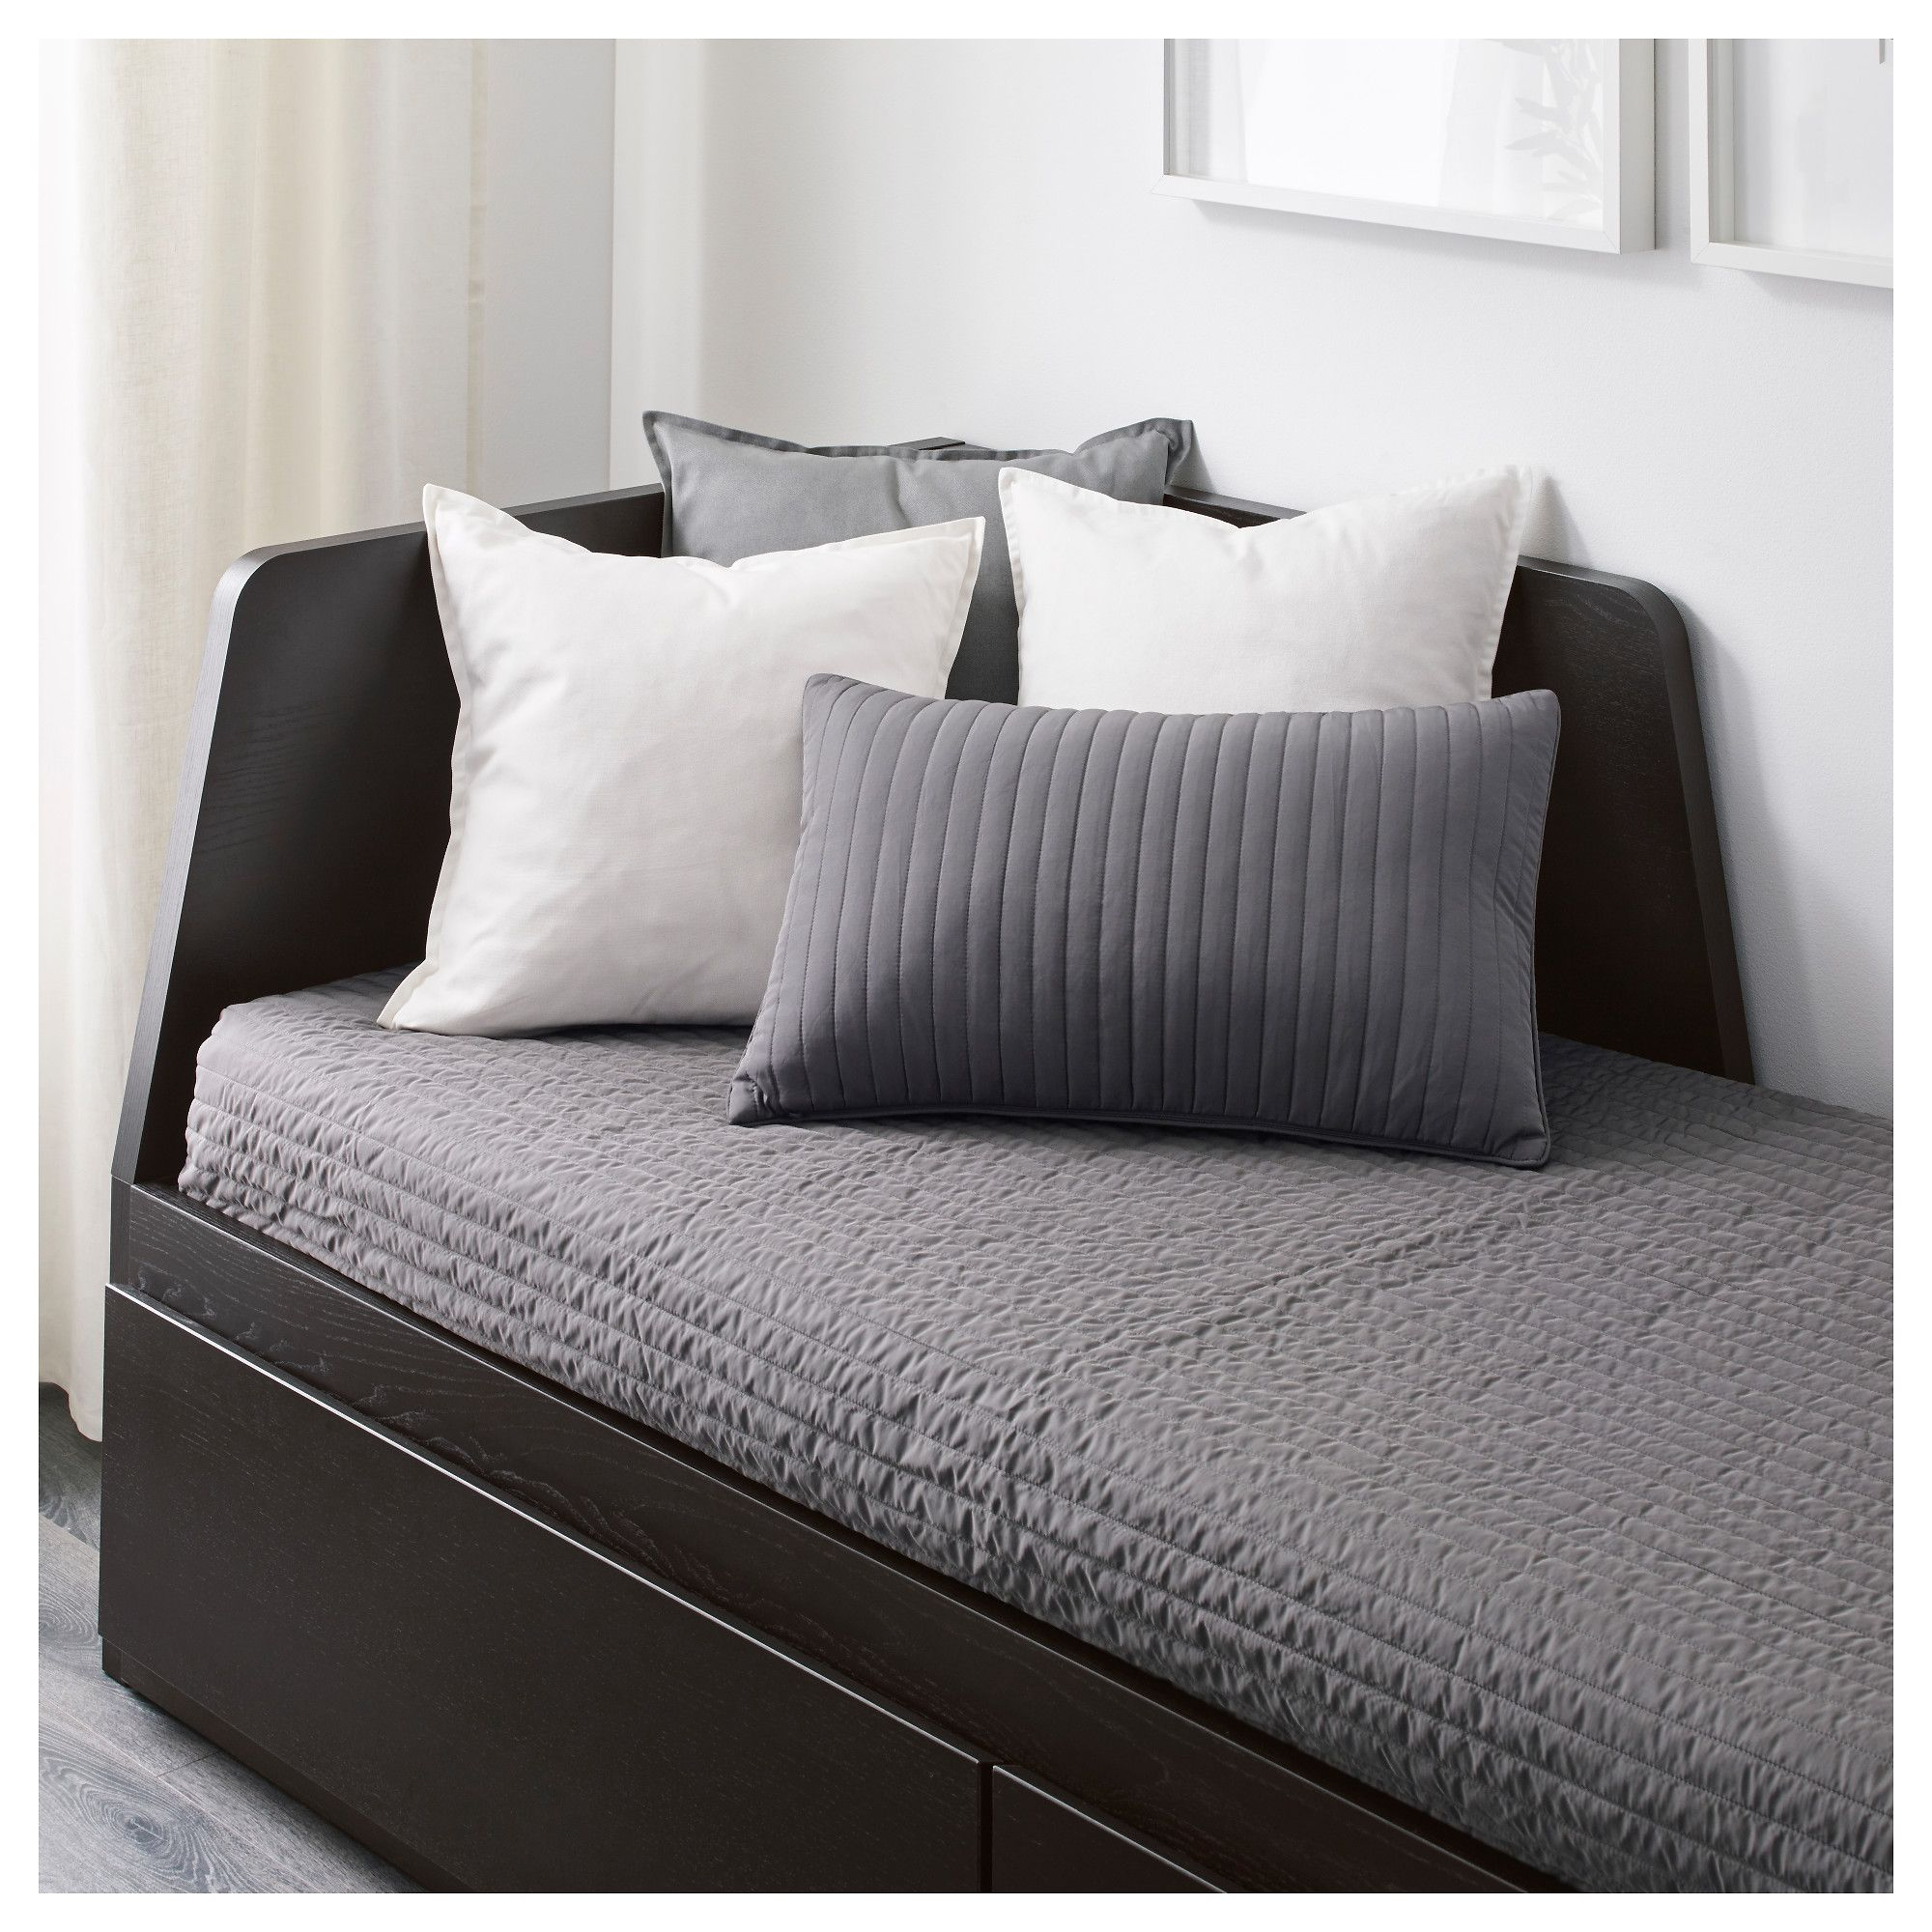 Furniture And Home Furnishings Daybed Ikea Daybed Day